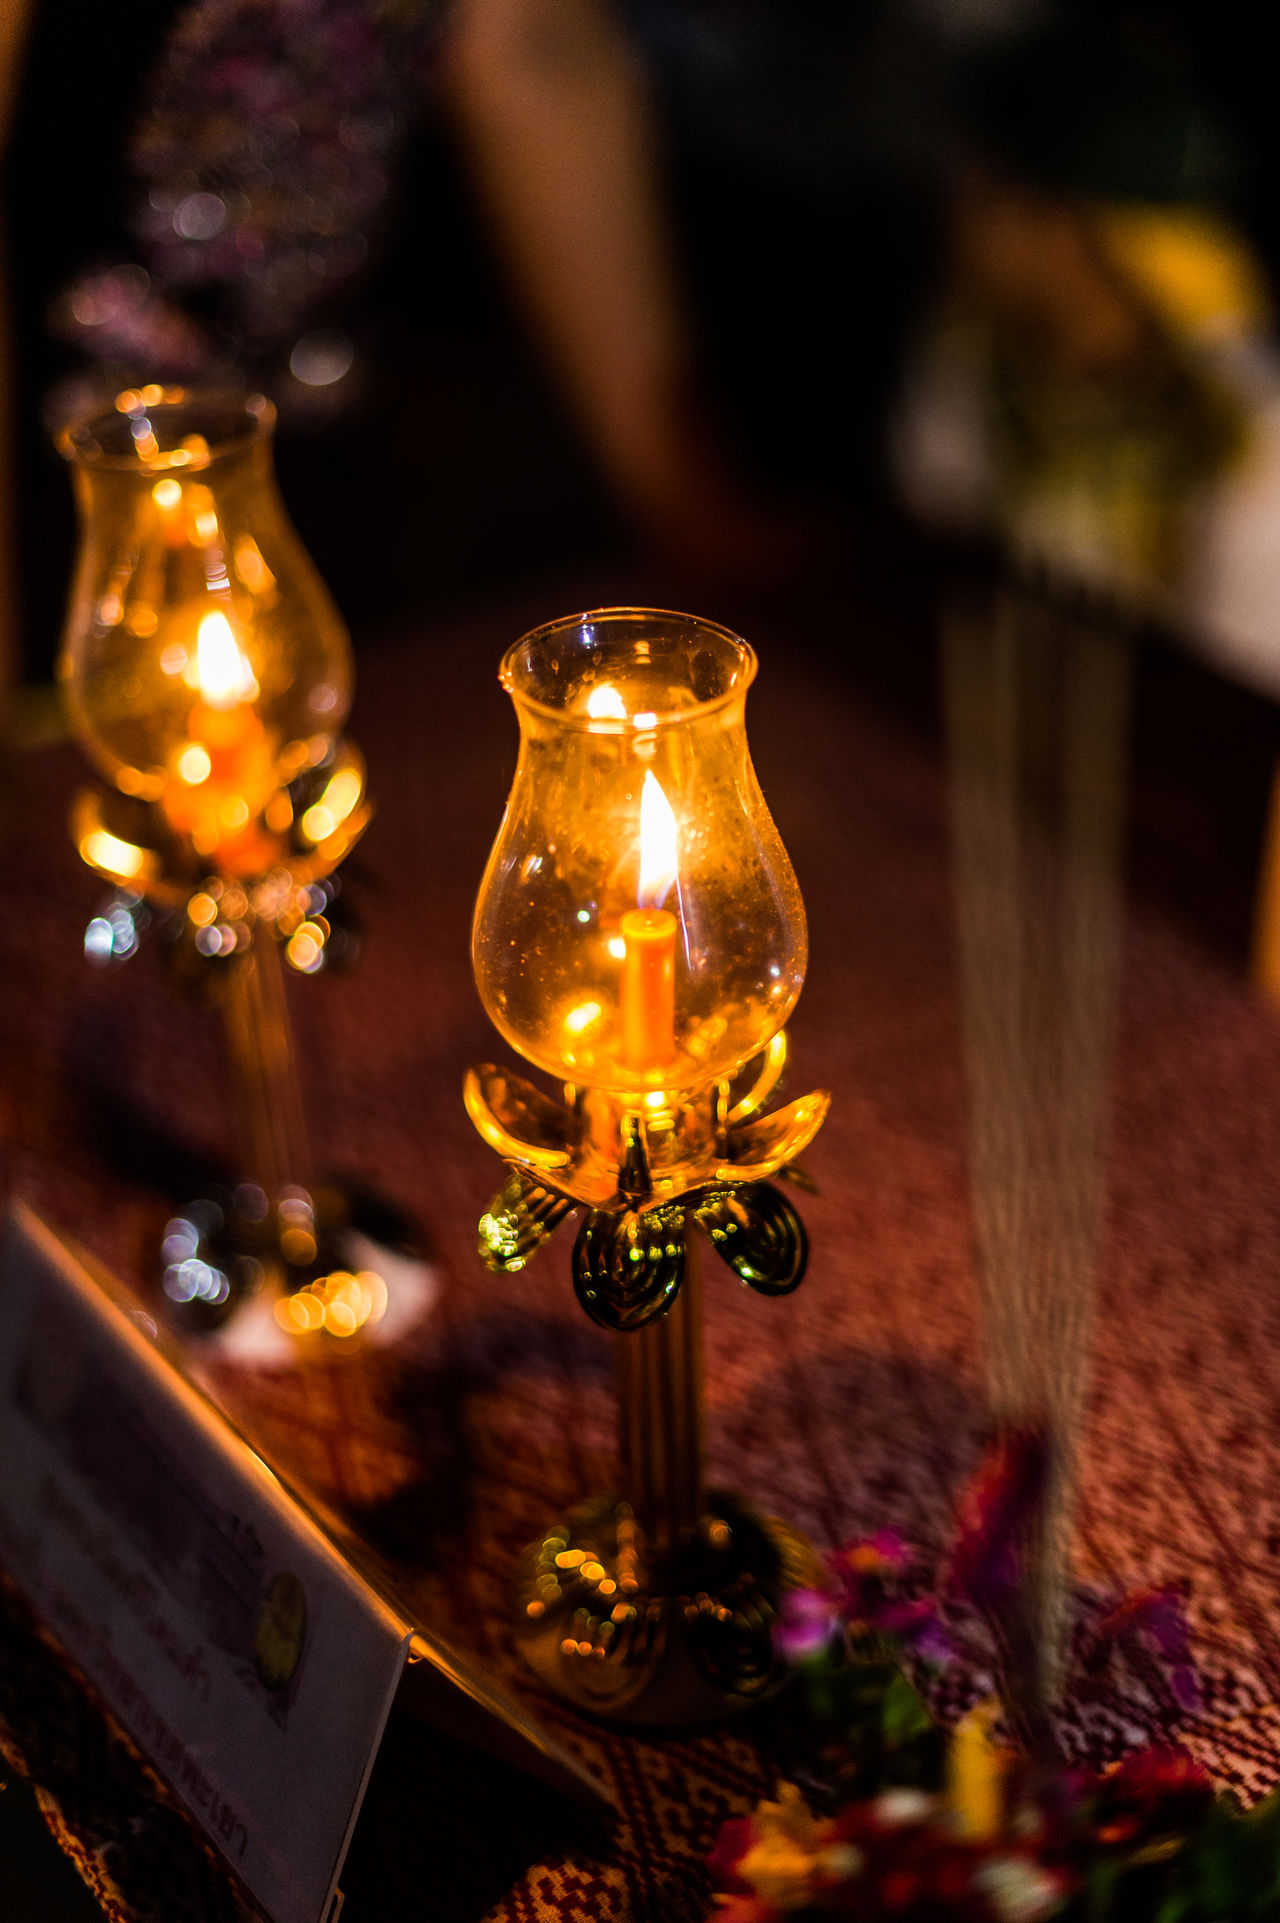 Candle Close-up Culture Design Focus On Foreground Illuminated Indoors  Lighting Equipment Night No People Objects